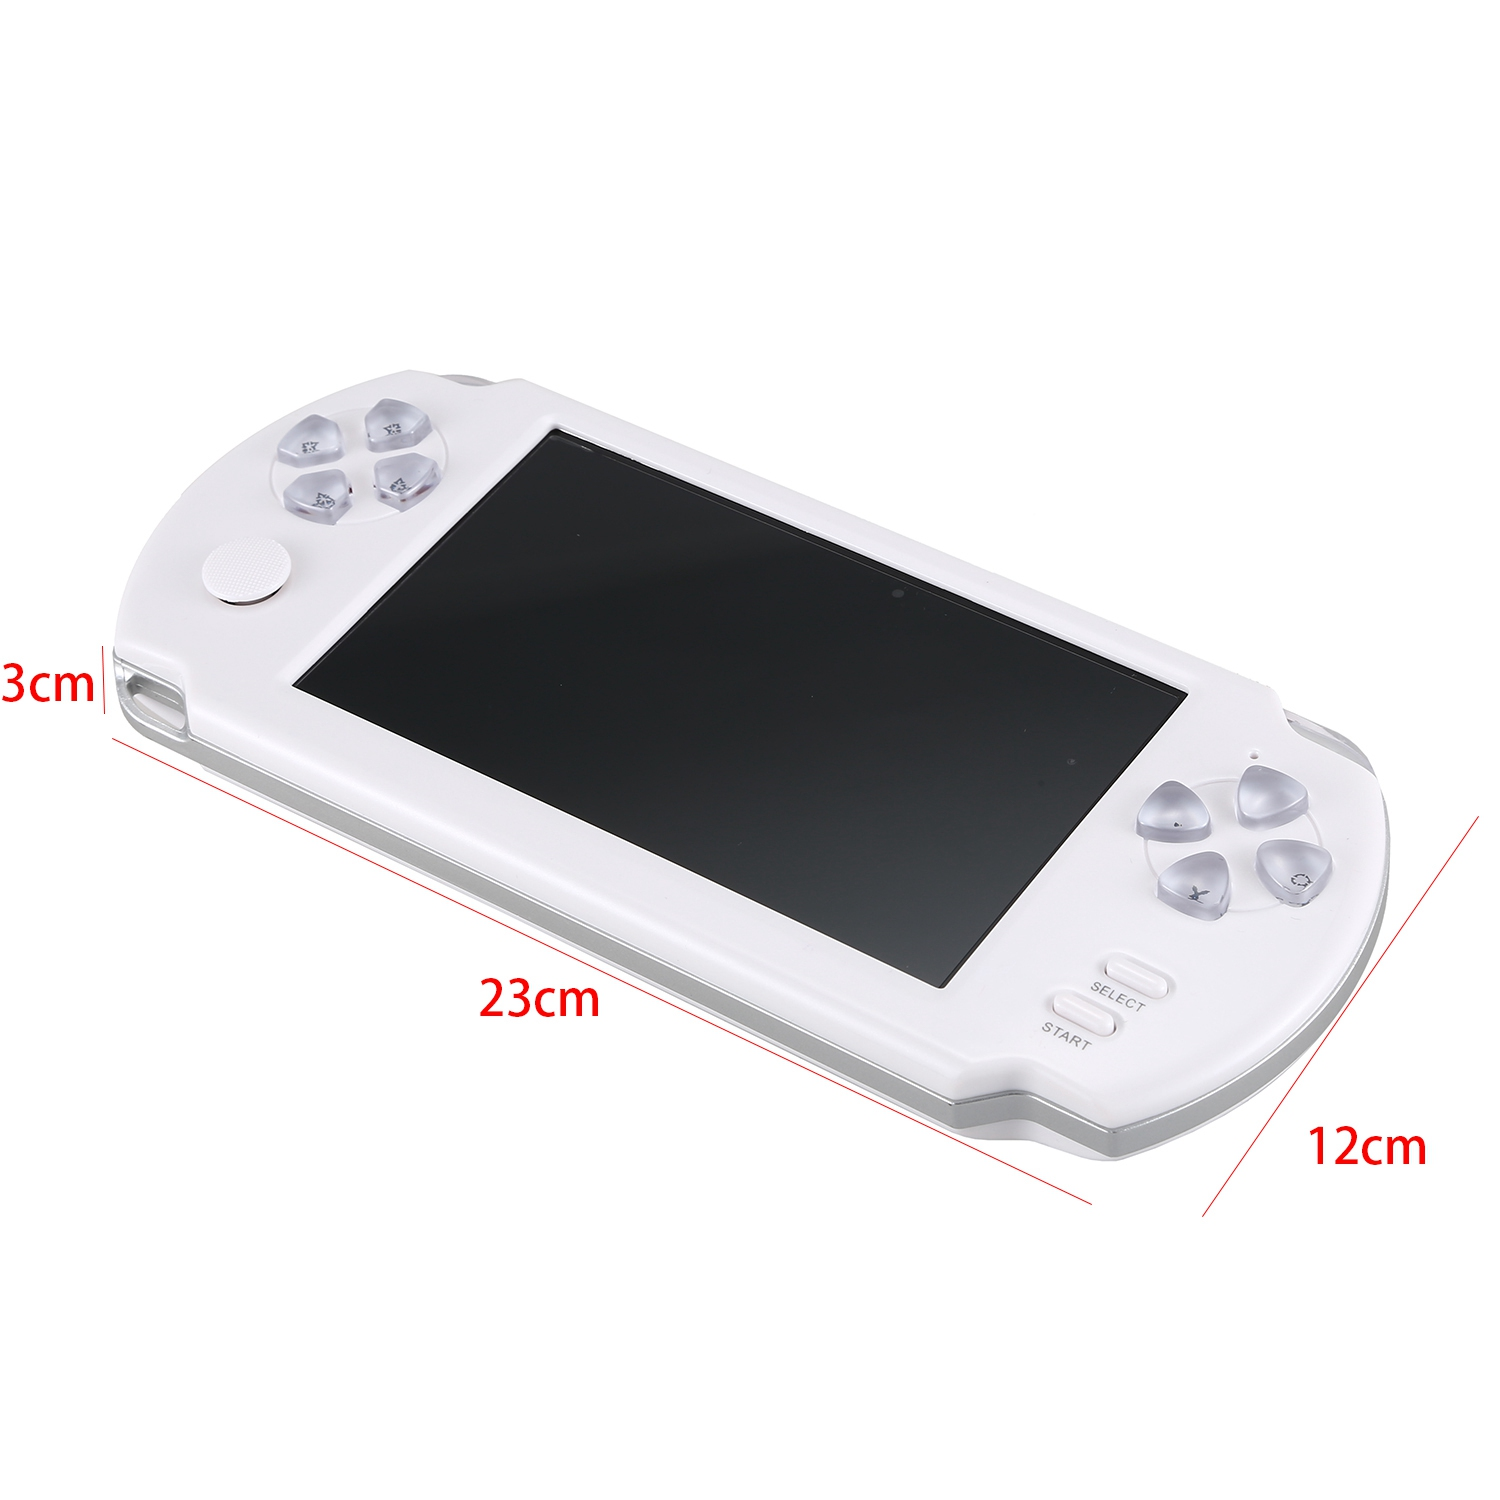 5 1 Inch Powkiddy 8G Retro Game Console Joystick Handheld Game Player Family TV Retro Video Consoles Built In 500 Games With P in Handheld Game Players from Consumer Electronics